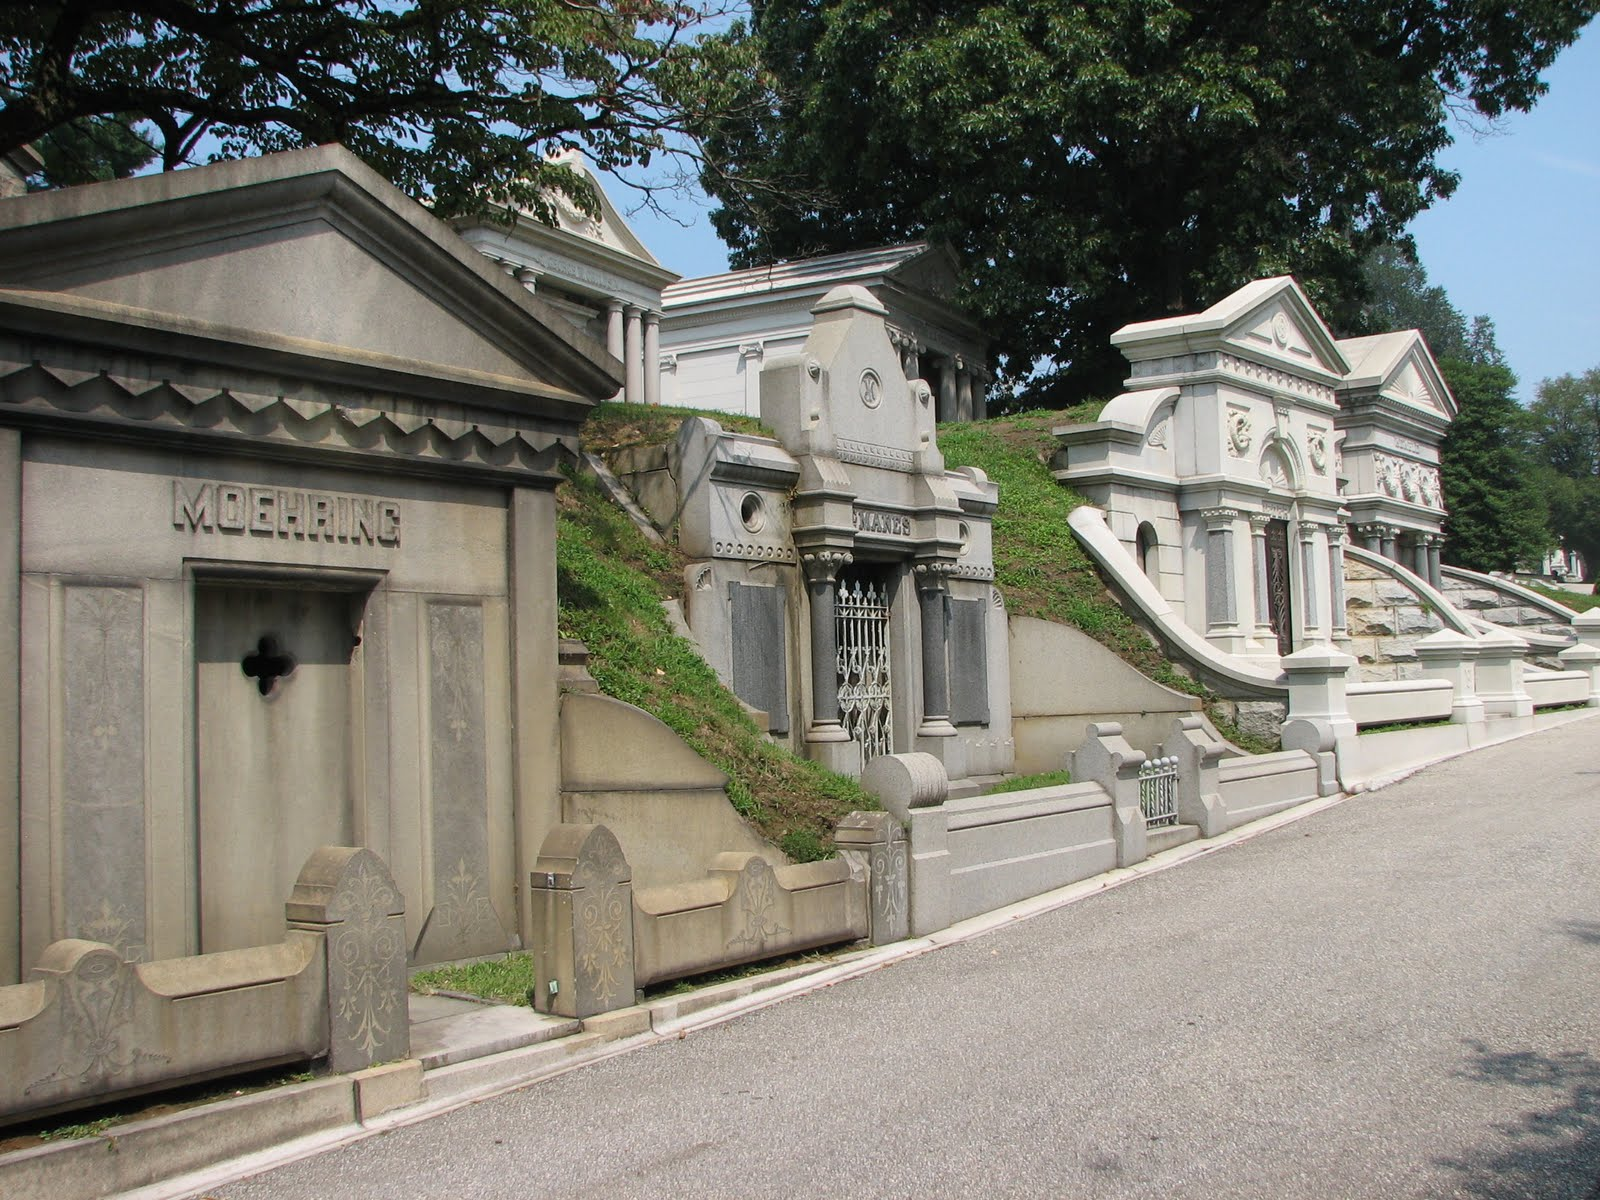 Just a few of the numerous mausoleums that are part of the Laurel Hill Cemetery.